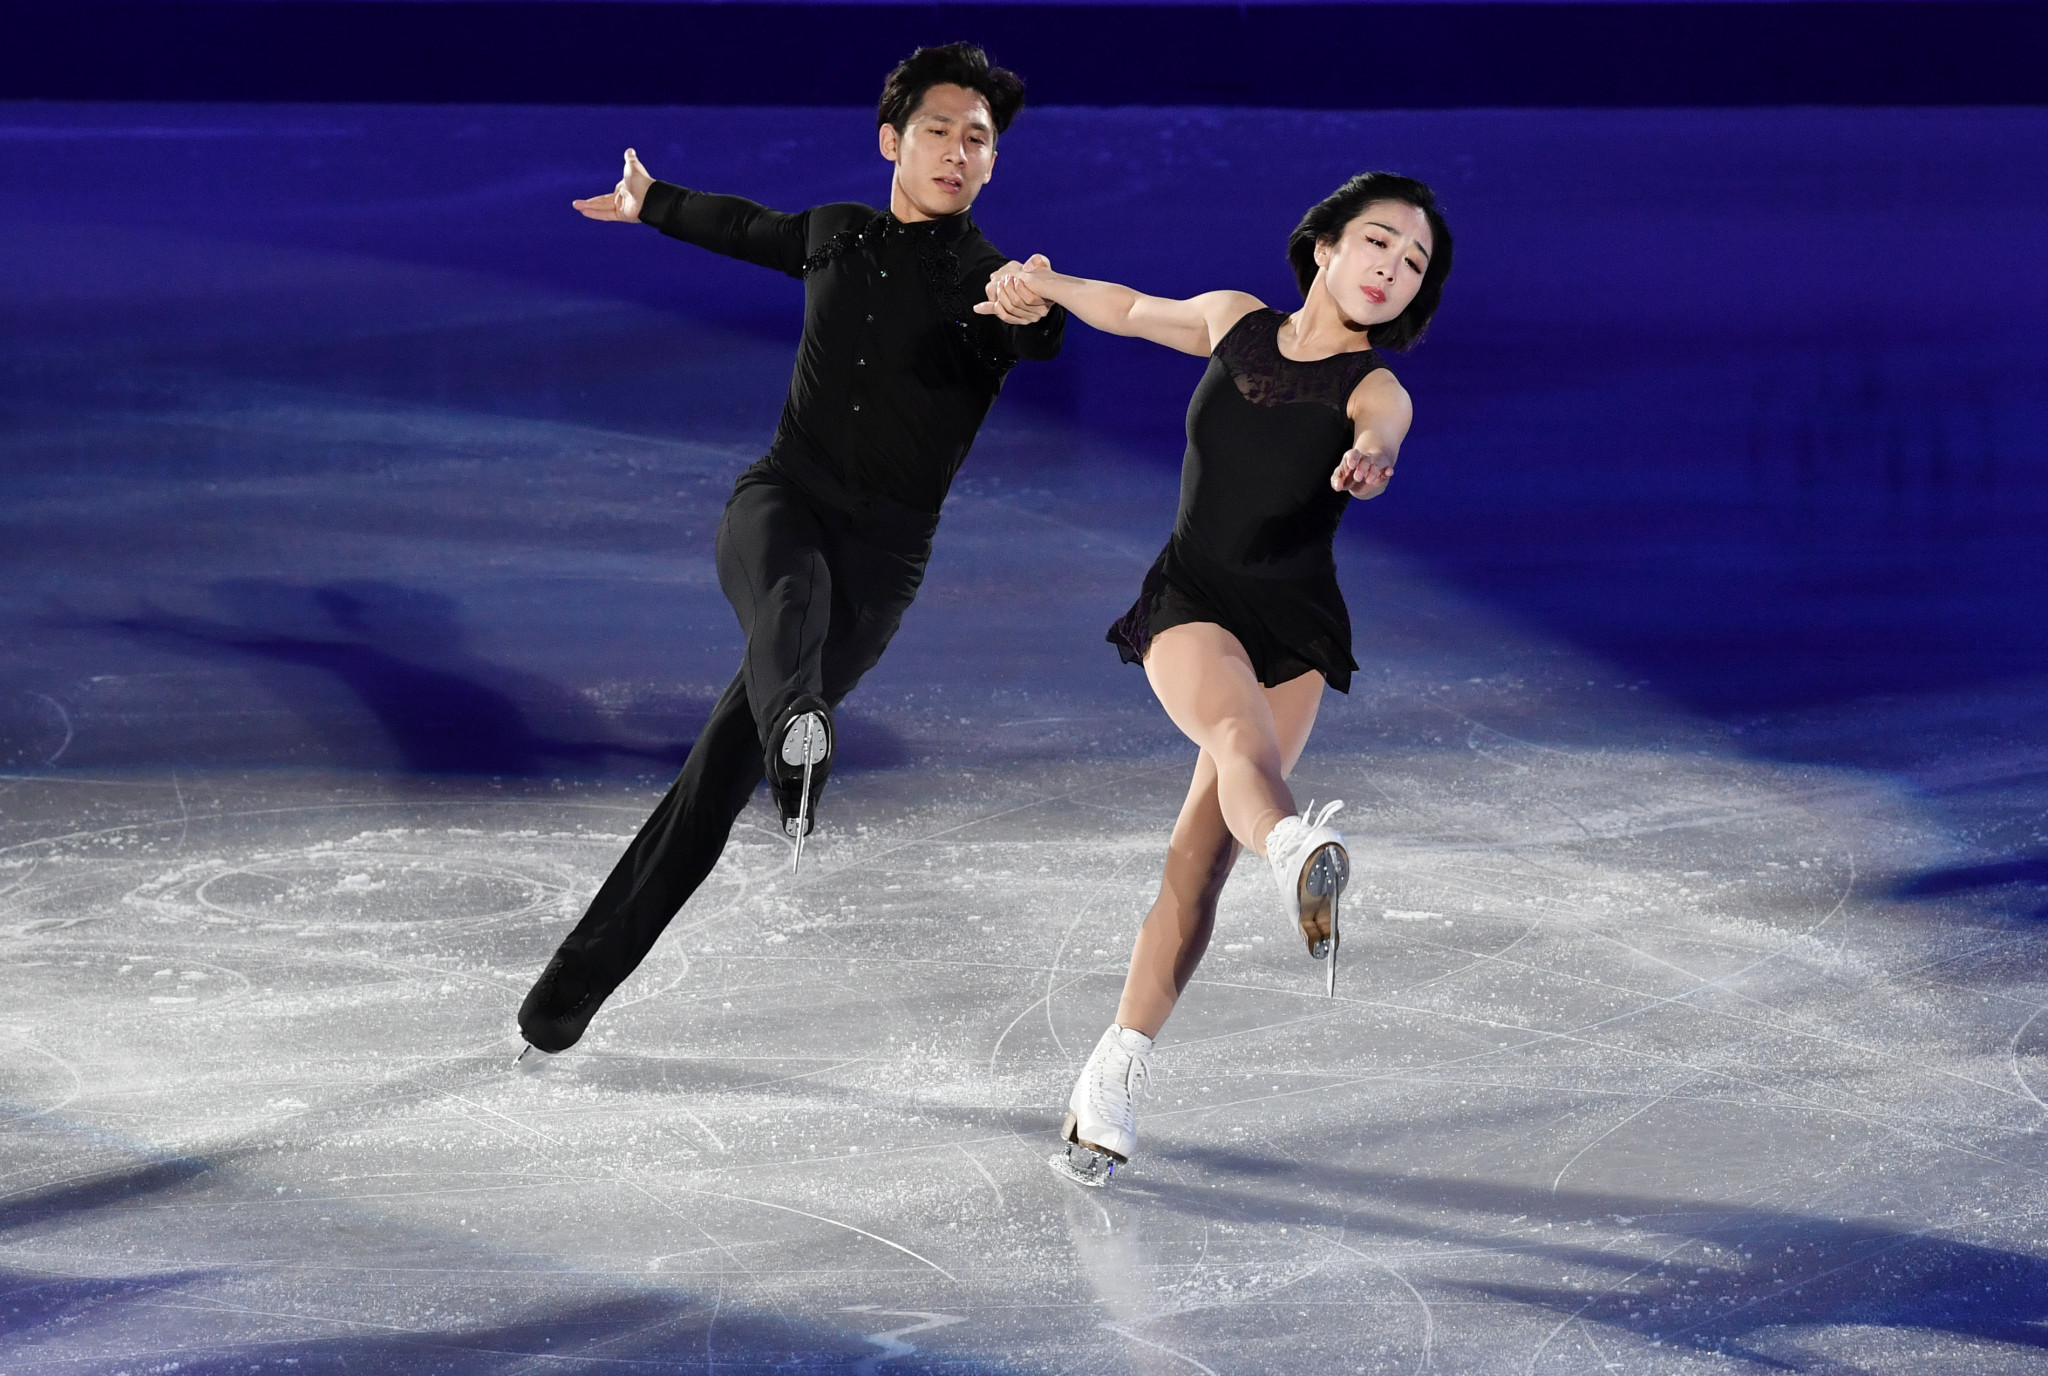 World champions Wenjing Sui and Cong Han are set to compete at the Shiseido Cup of China, which will only feature competitors from the home country ©Getty Images